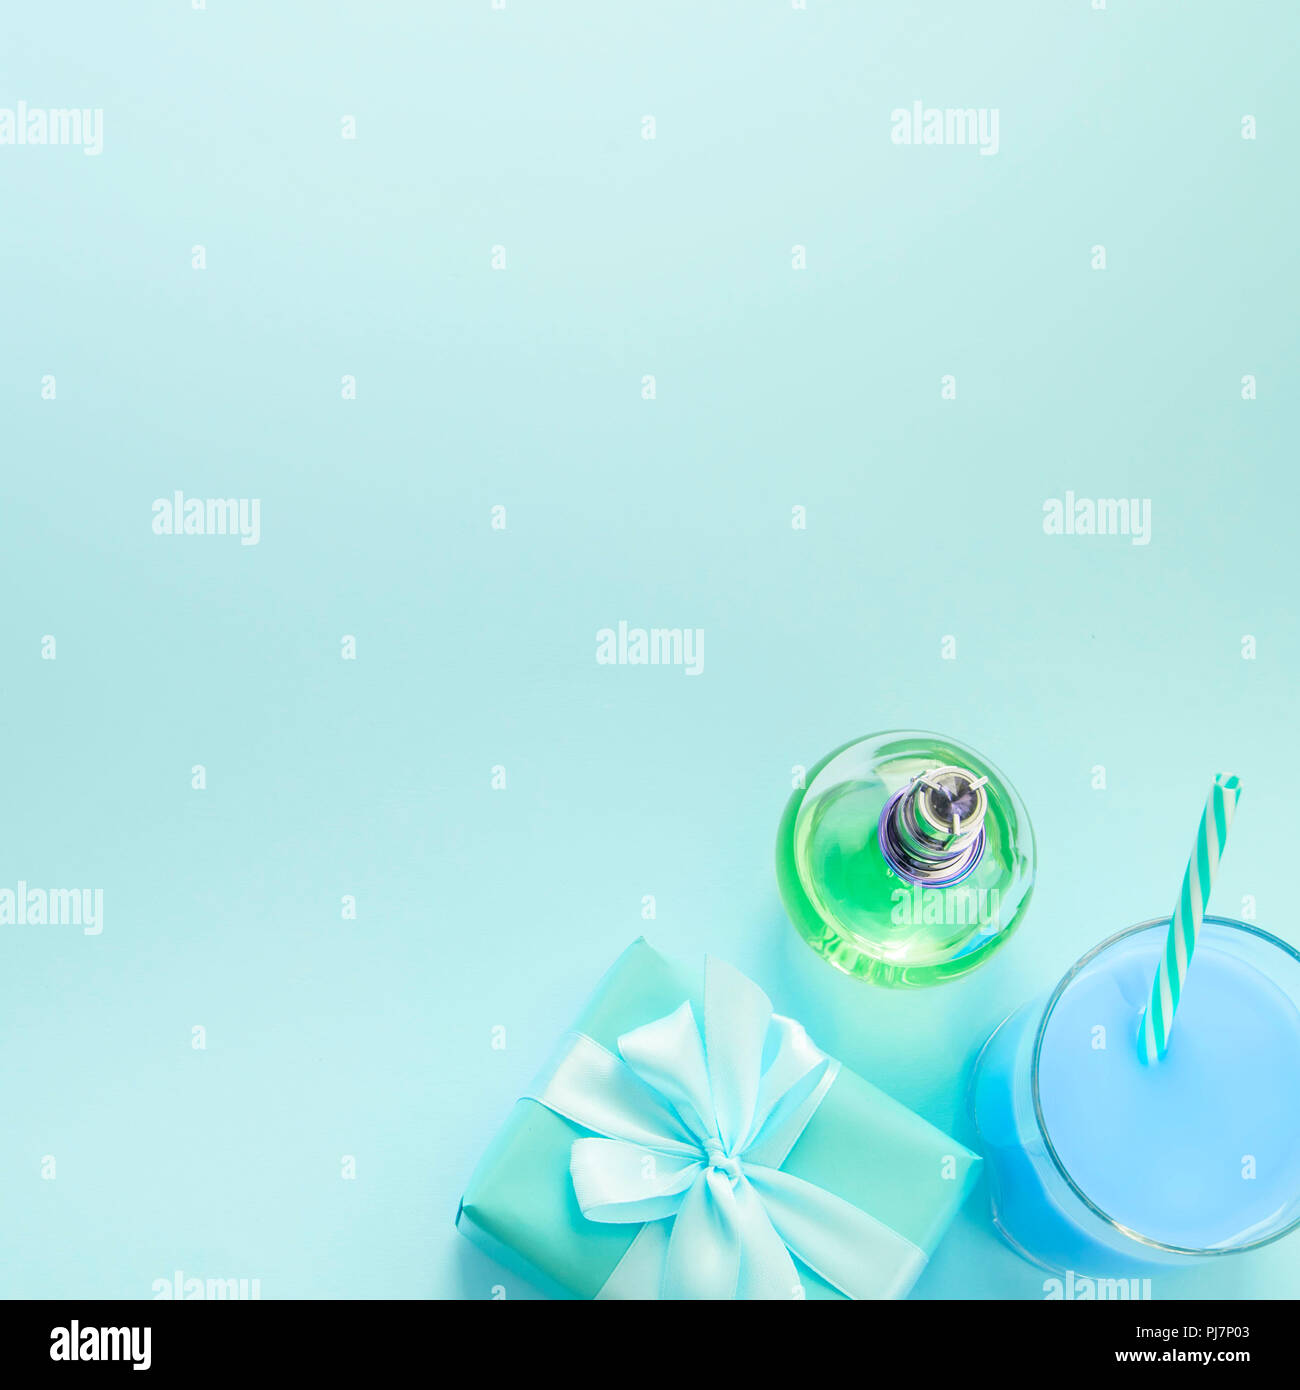 Surrealiam Composition flat lay gift to a woman glass cocktail perfume bouquet of flowers. Preparing for the holiday surprise gift box. Top view blue  - Stock Image